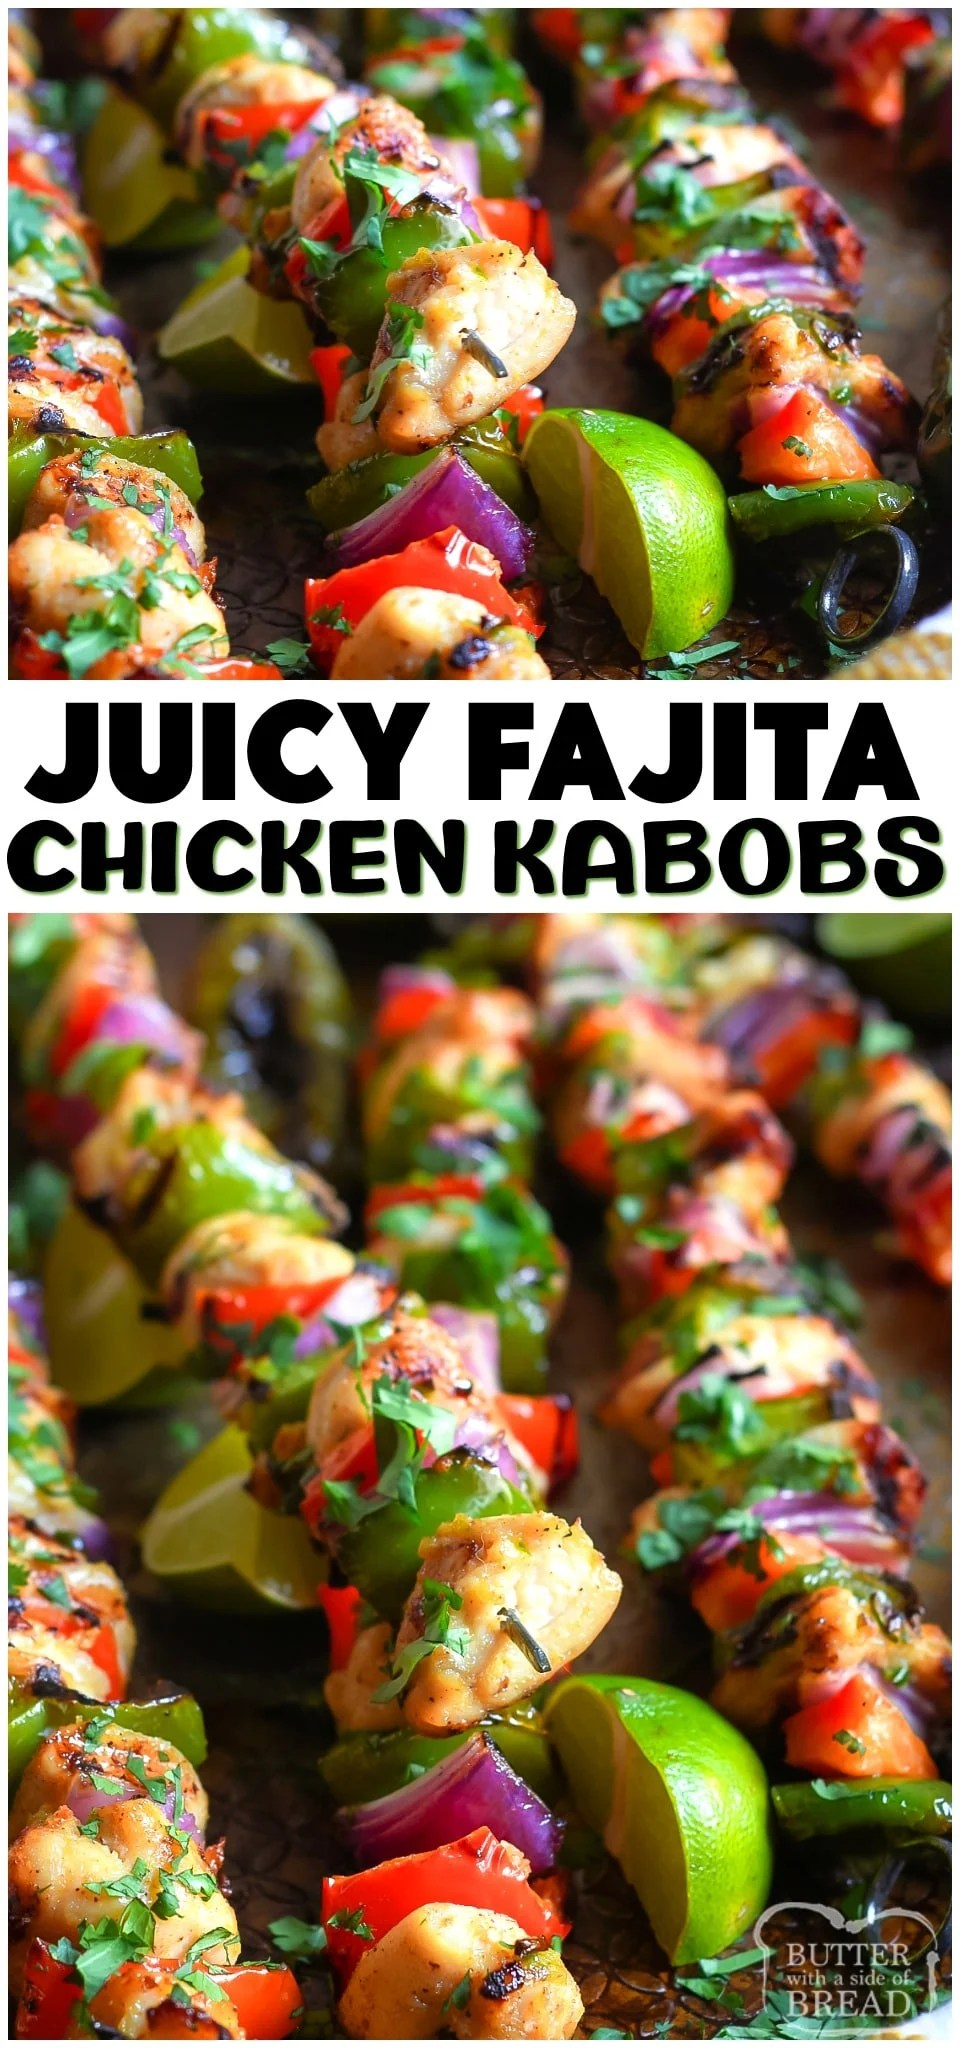 Fajita chicken kabobs are all your favorite fajita flavors on a grilled kabob! Tender & flavorful chicken with bell peppers and onion grilled together and ready to serve. #kabobs #grilling #bbq #fajitas #chicken #dinner #chickenkabobs #grilled #recipe from BUTTER WITH A SIDE OF BREAD